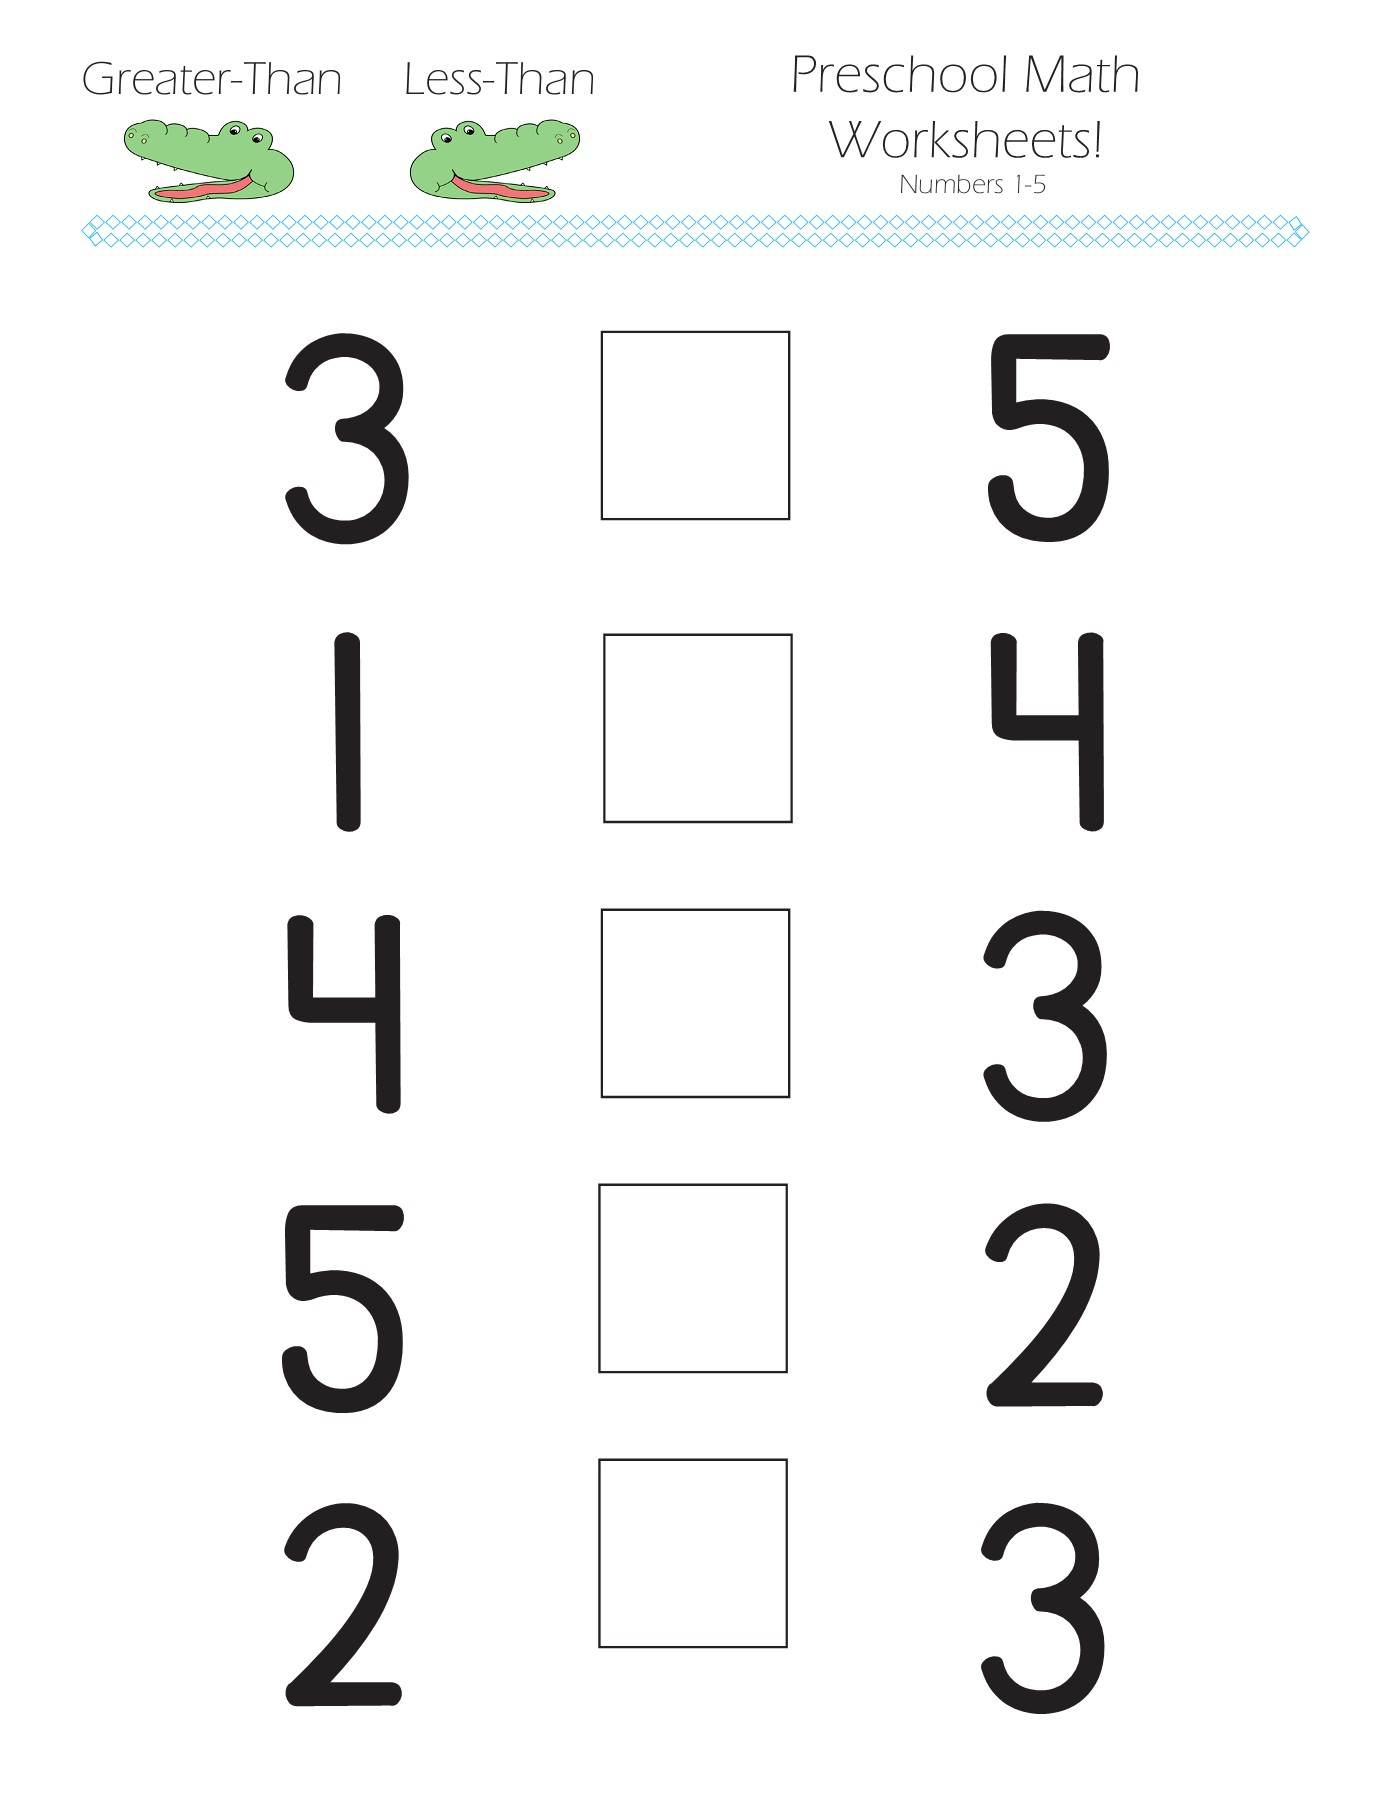 - Greater-Than Less-Than Preschool Math Worksheets! Pages 1 - 9